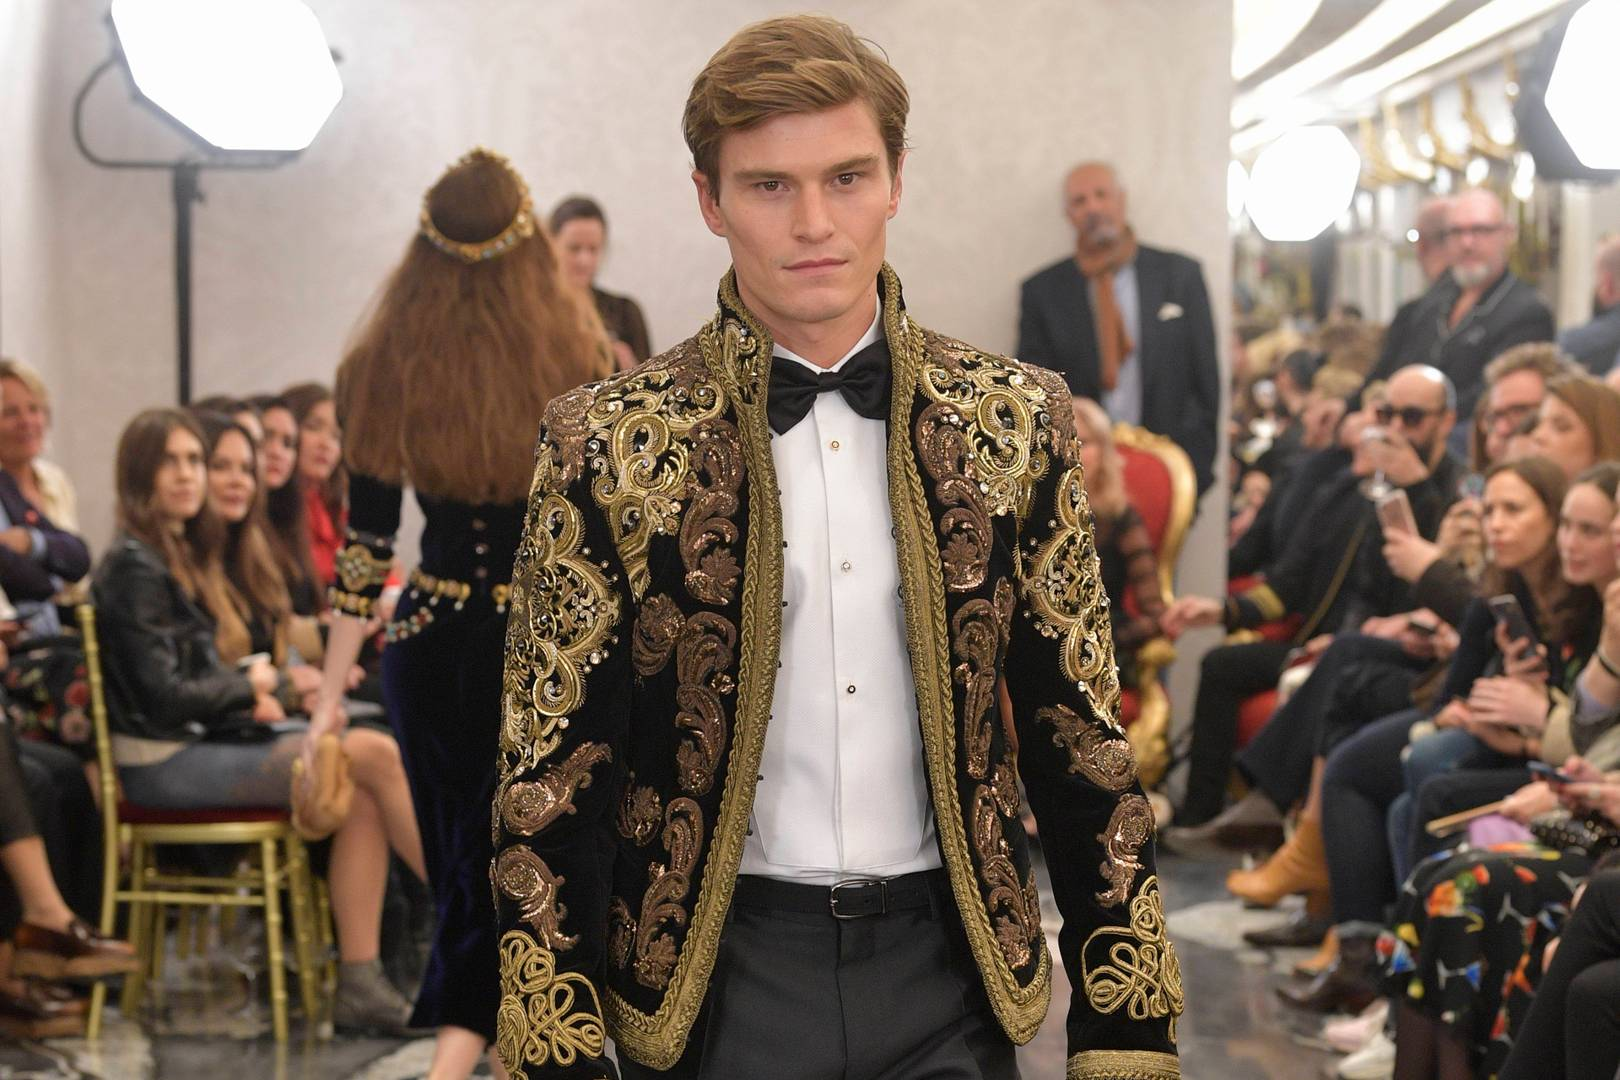 fb7023ccab Dolce & Gabbana brings Alta Sartoria to London | British GQ